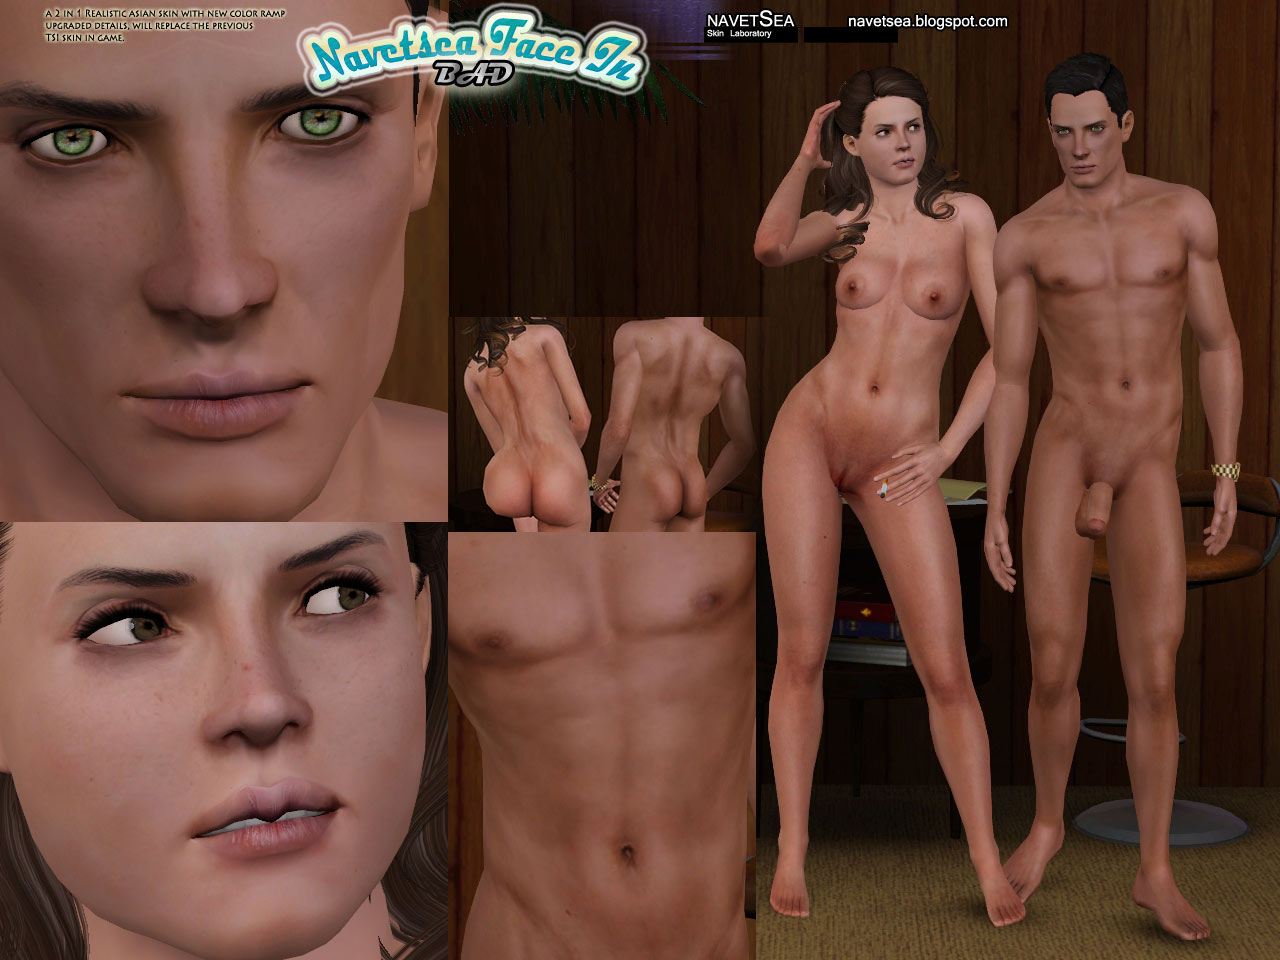 The sims 2 naked skins sex vids